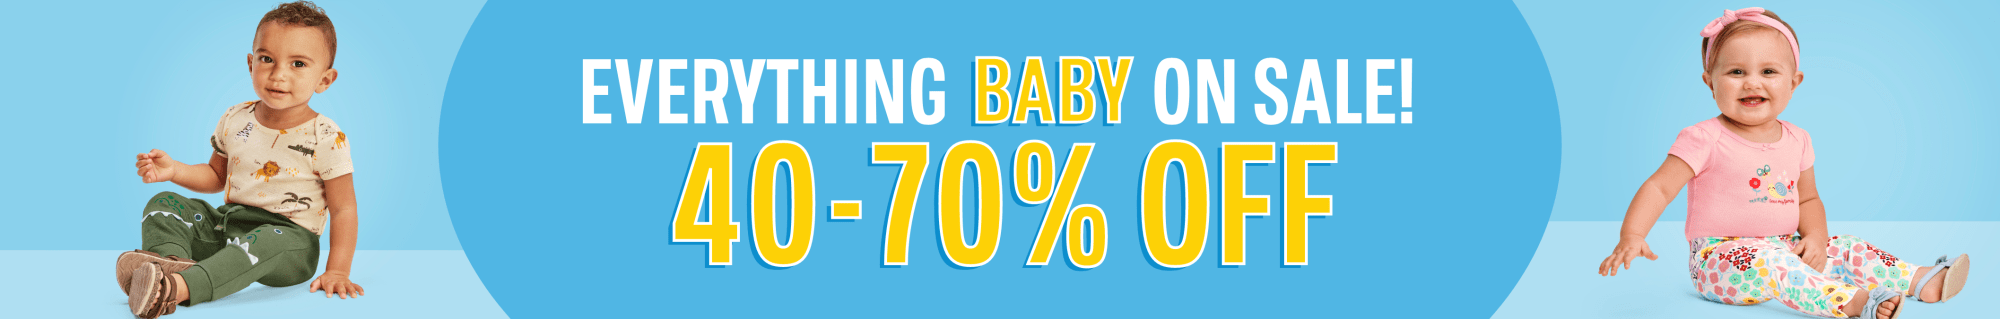 Everything Baby 40-70% Off!